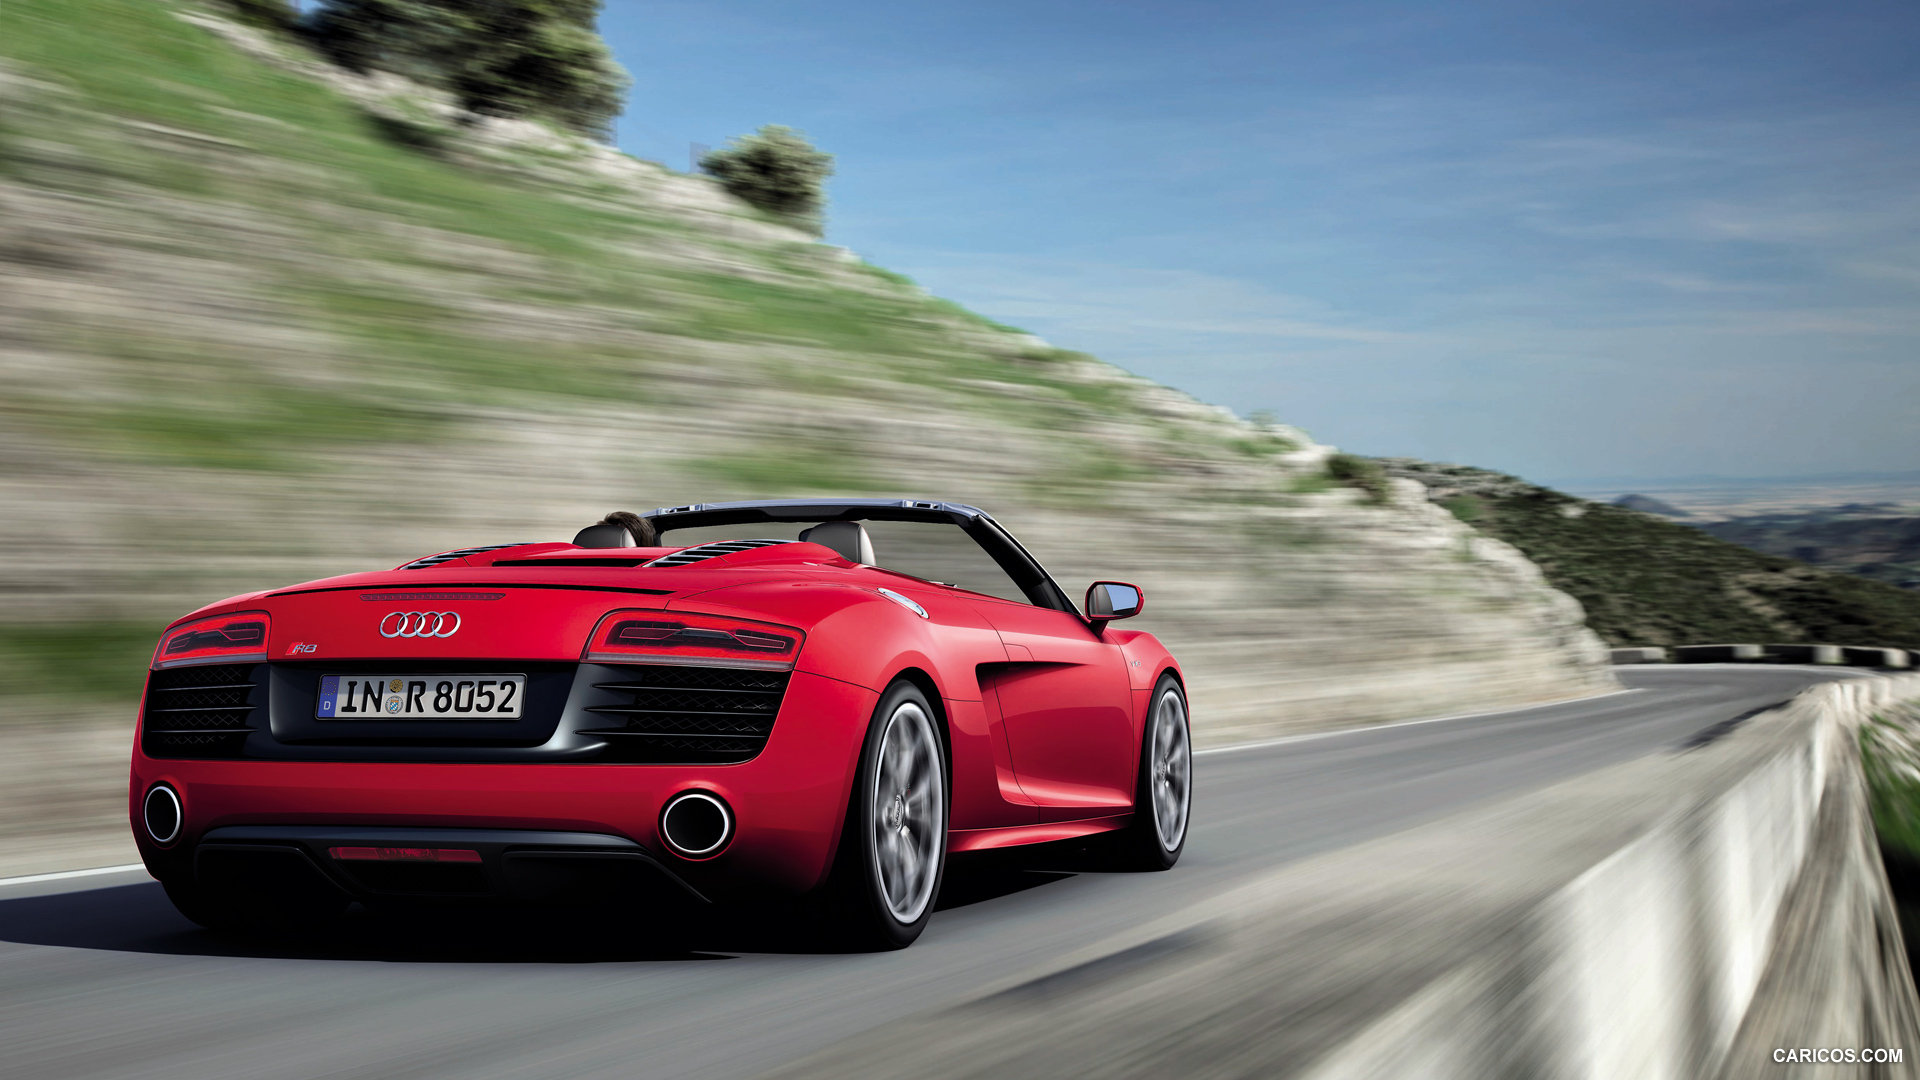 2013 Audi R8 Spyder V10   Rear HD Wallpaper 5 1920x1080